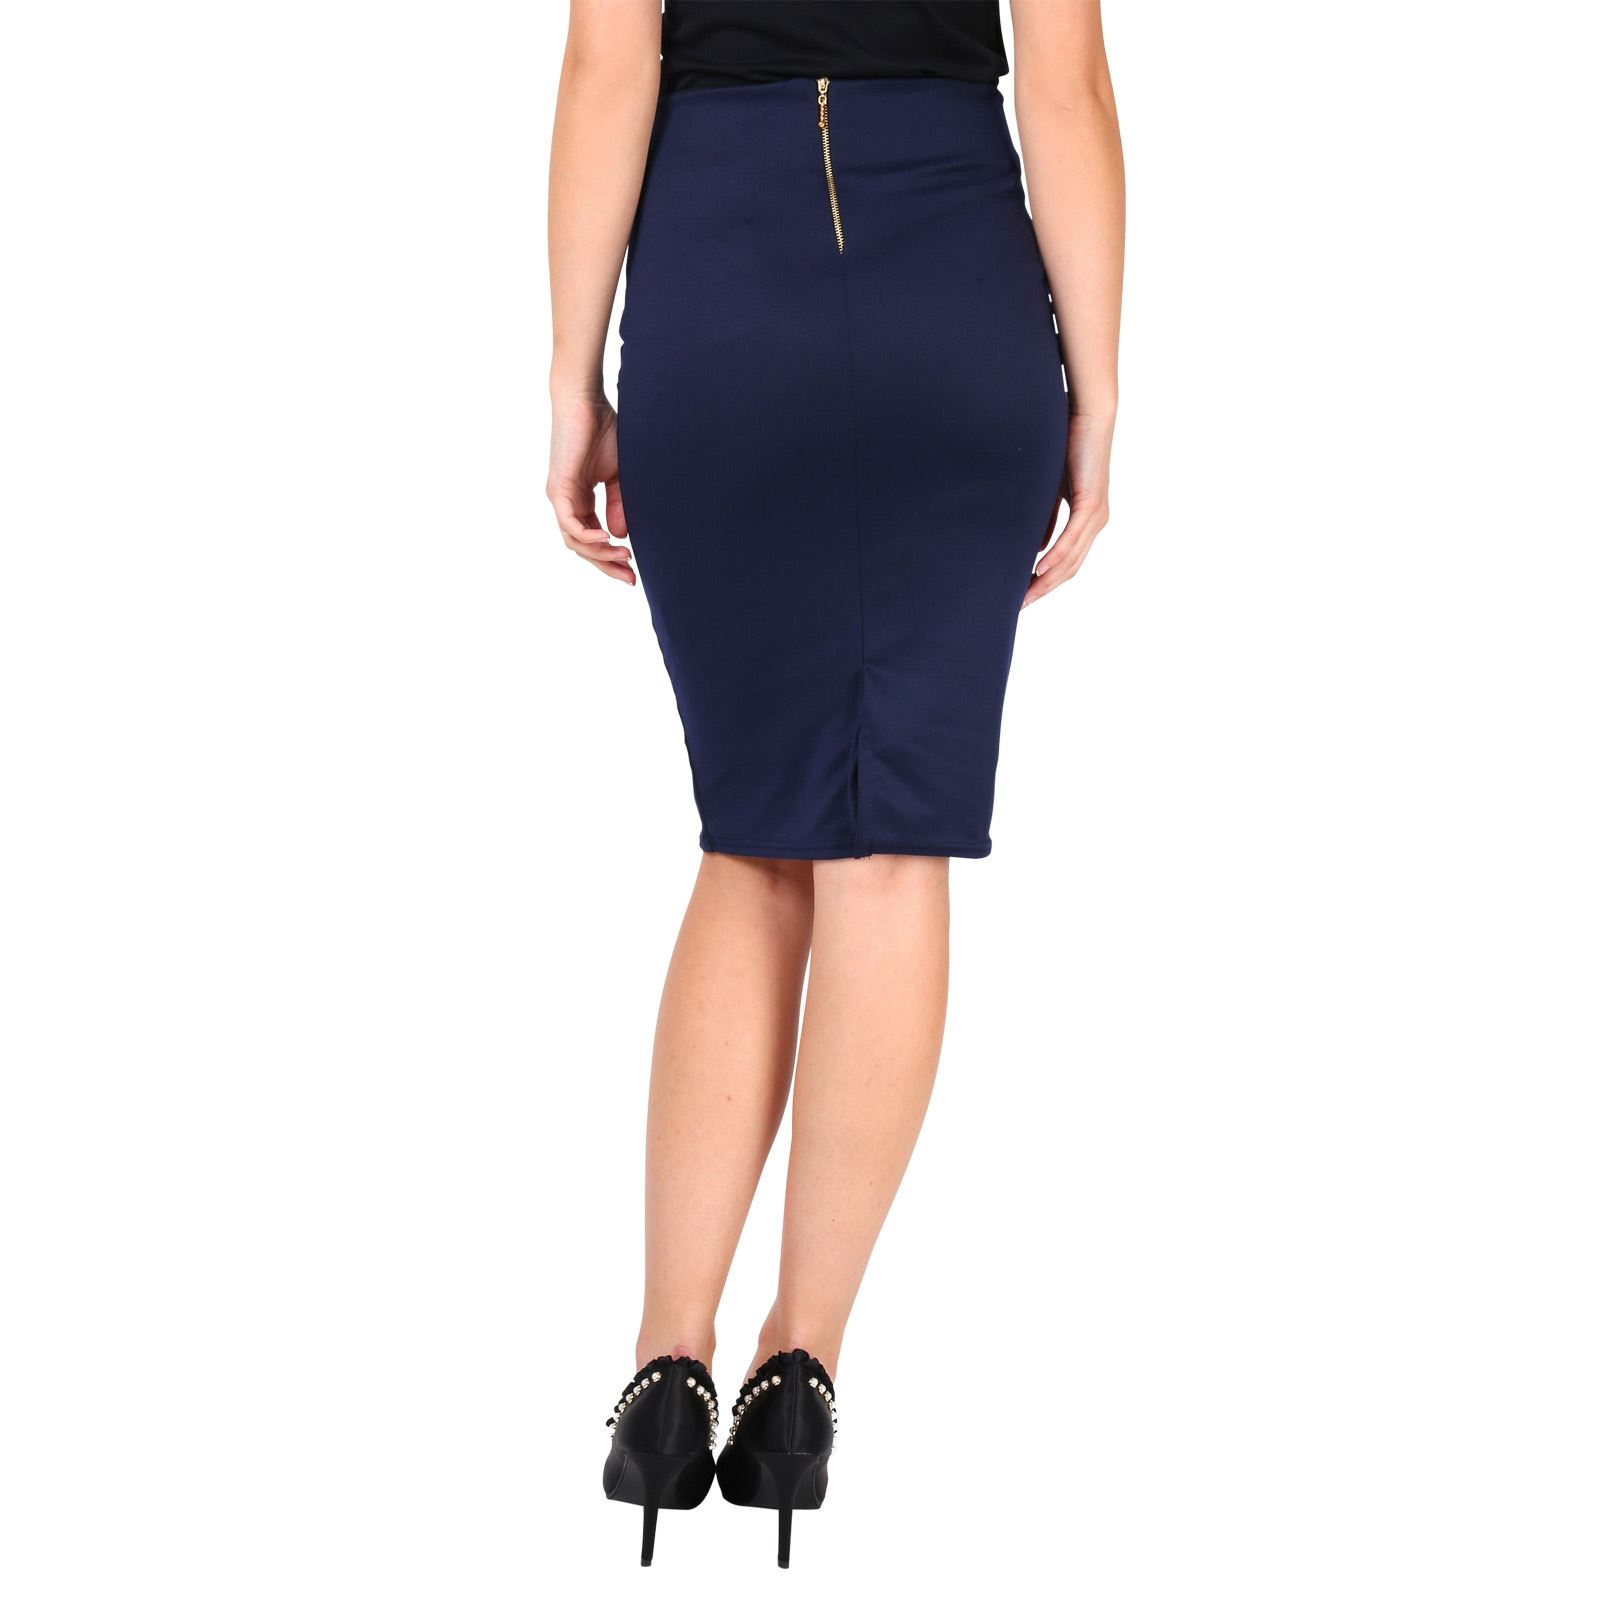 Womens-Ladies-Pencil-Midi-Skirt-Stretch-Fitted-Belt-Bodycon-Office-Work-8-20 thumbnail 13